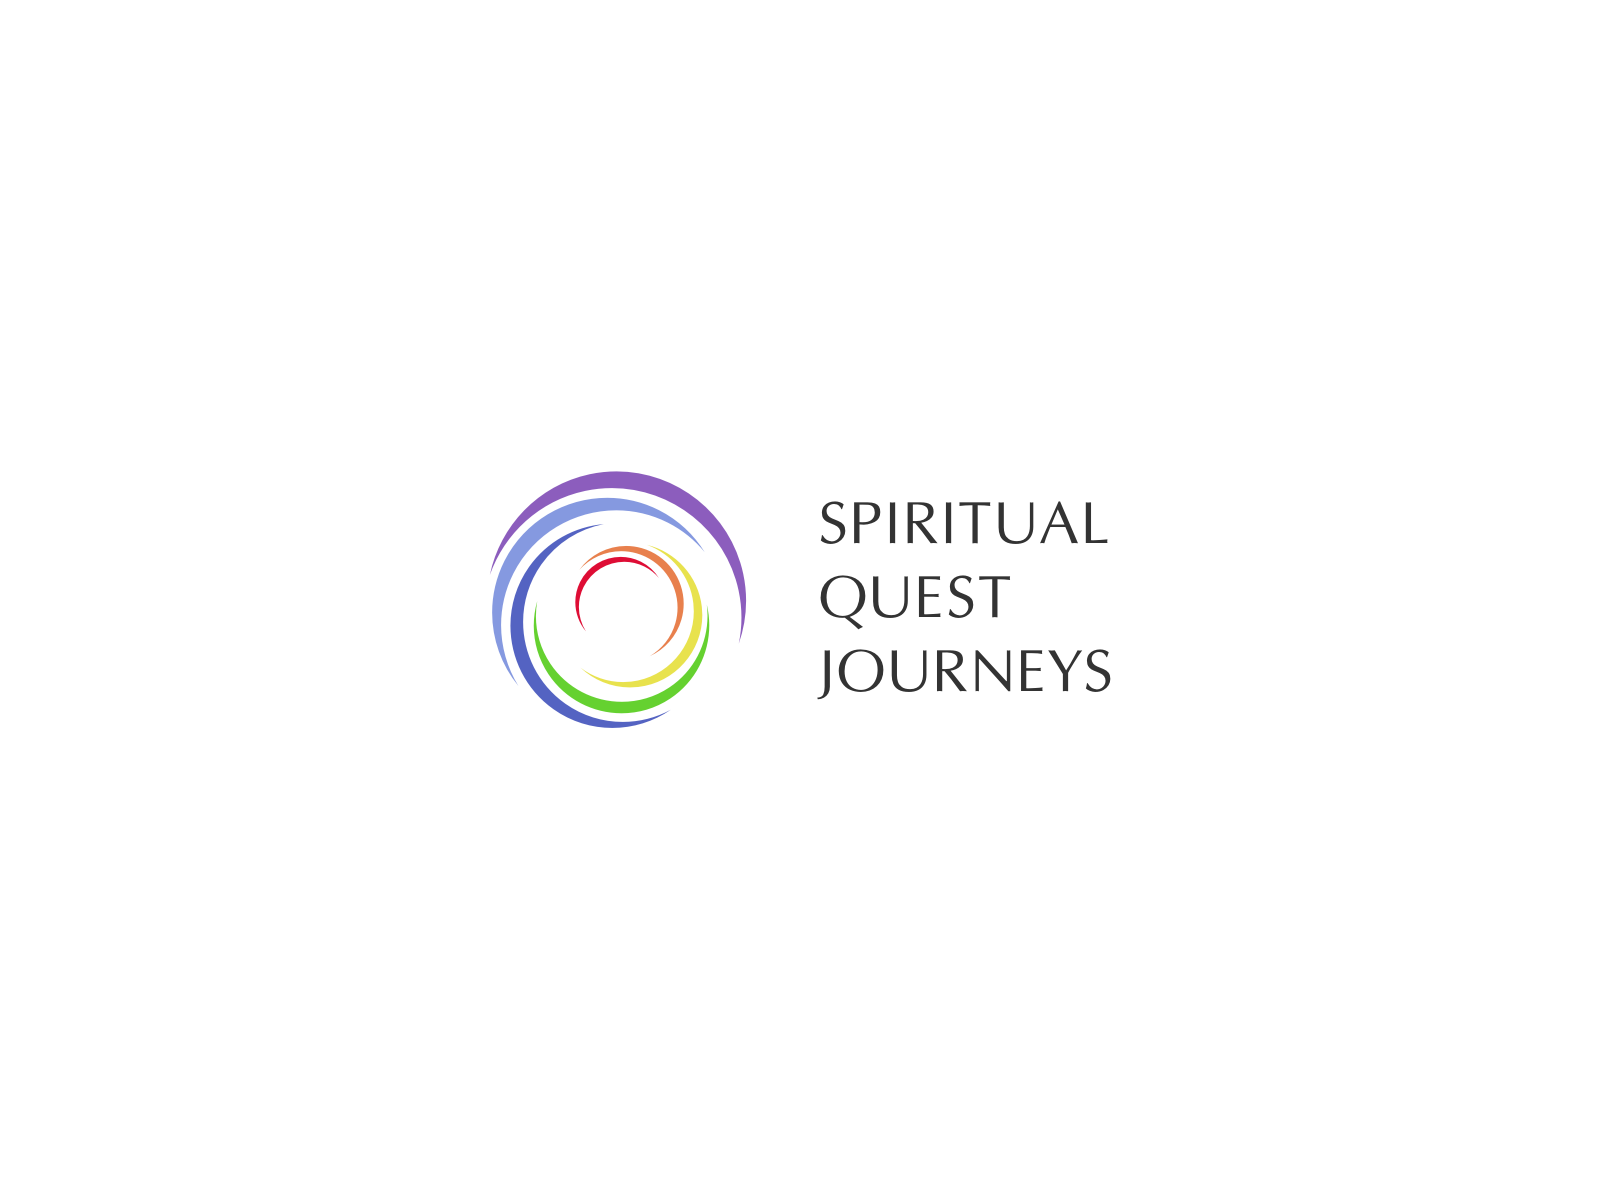 New logo wanted for Spiritual Quest Journeys